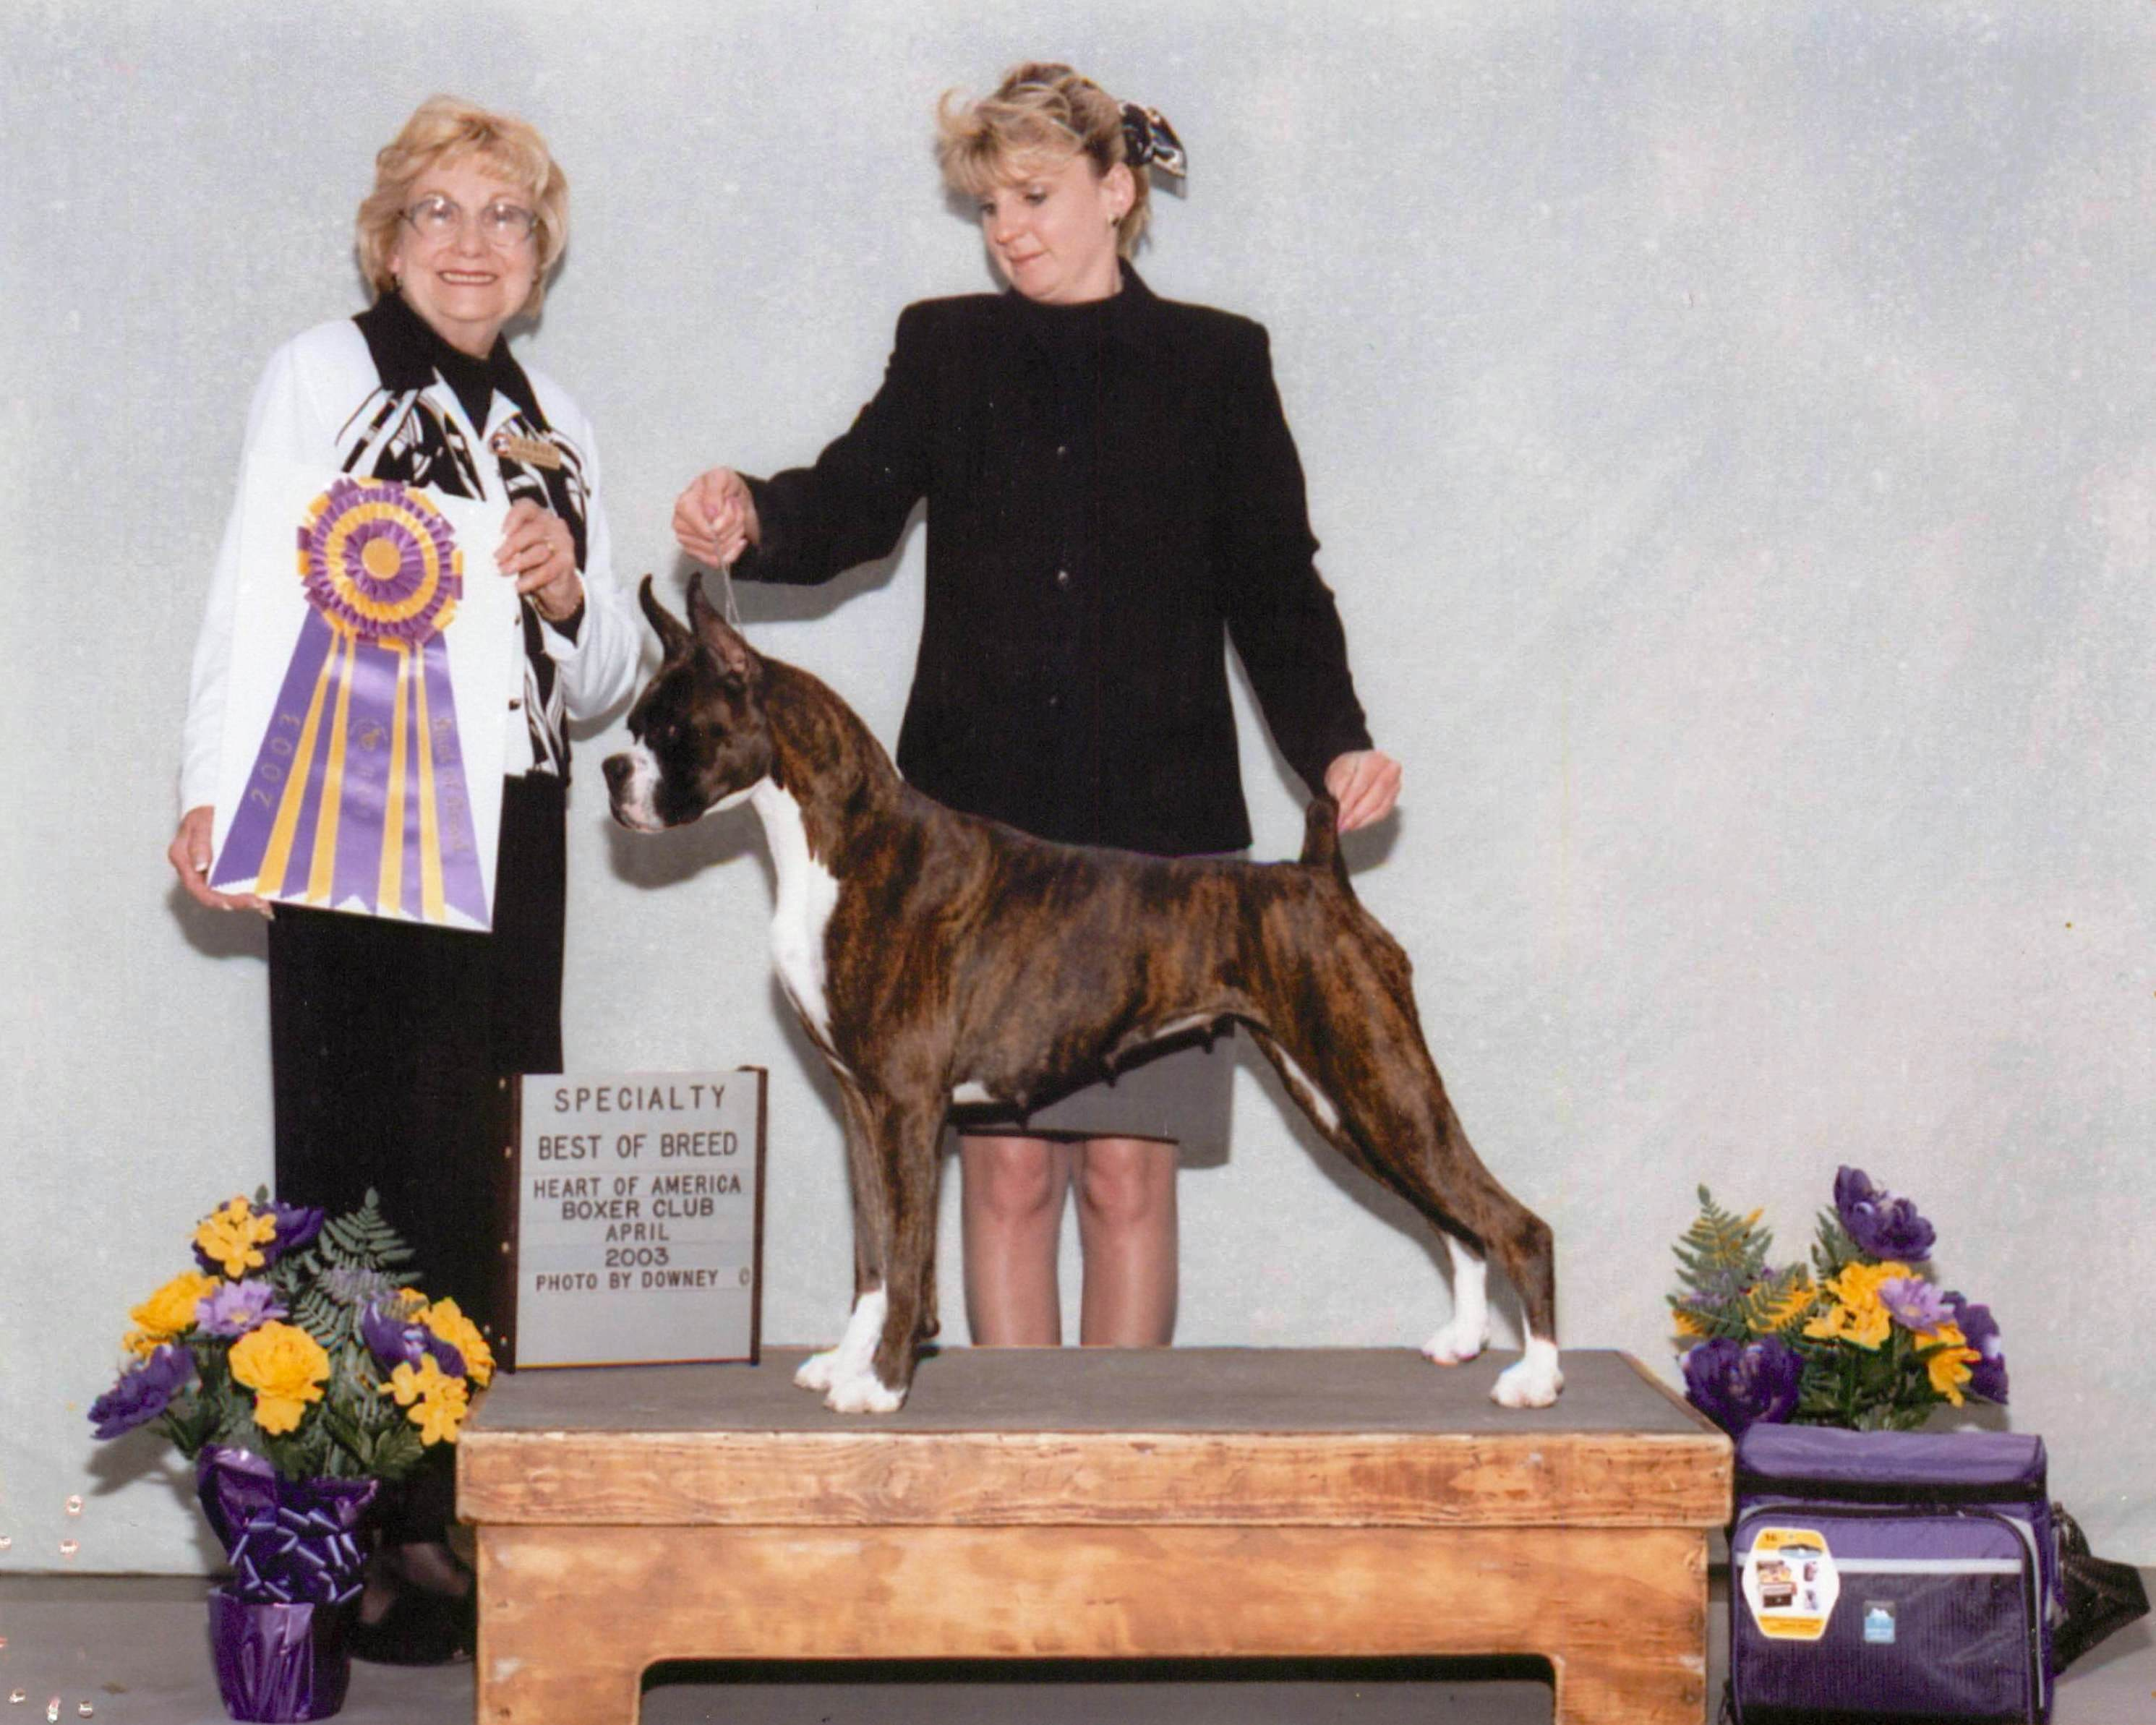 Best of Breed @ 2003 Specialty Show #1